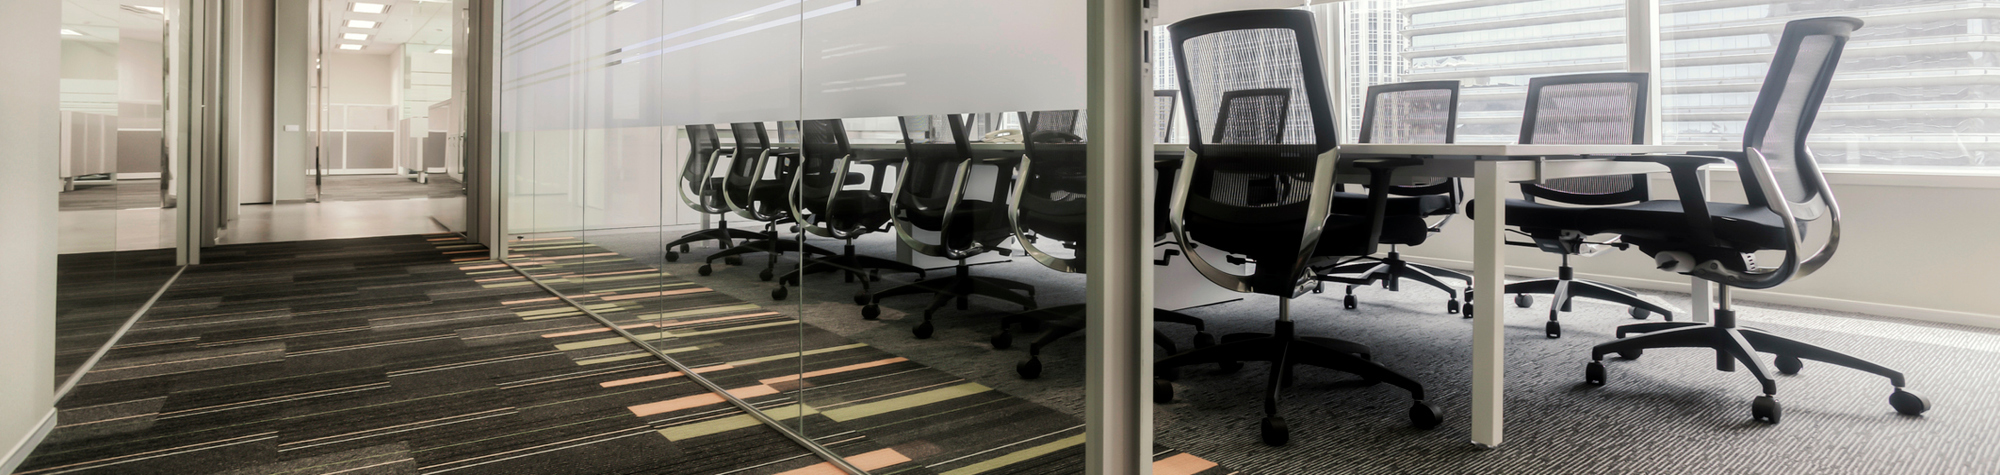 Executive Board Paul Kynaston Cover Image. Featuring a glass-walled boardroom with a 14-seater table surrounded by wheeled, grey and black office chairs. Also featuring a square patterned carpet and doorway to another office room. Search Consultancy.